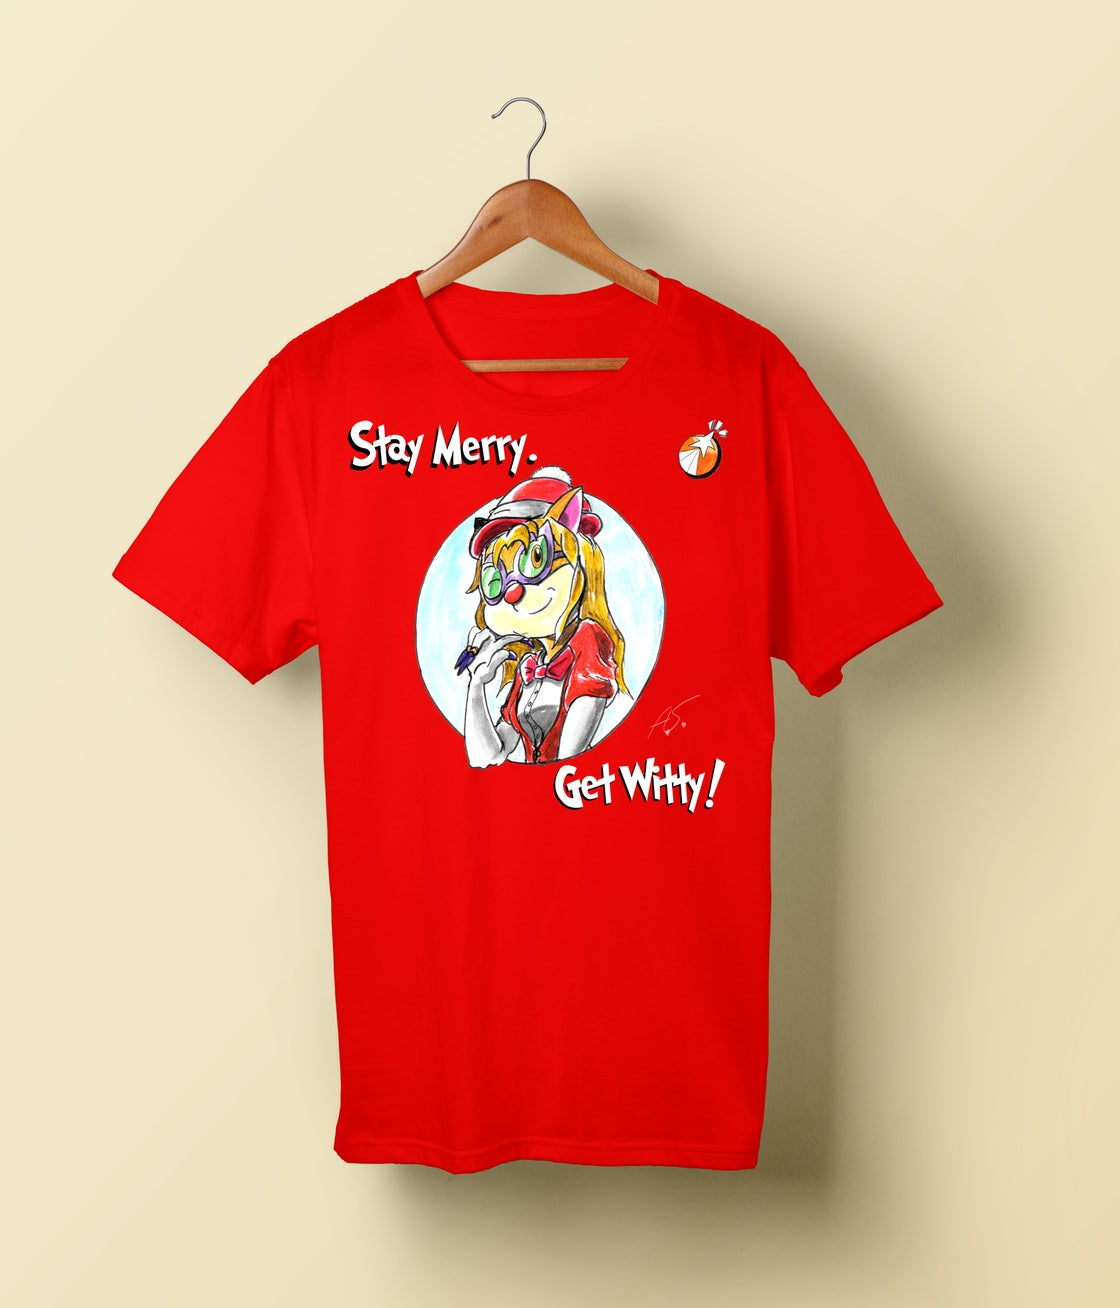 Image of SolForce Christmas T-Shirt: Stay Merry. Get Witty!